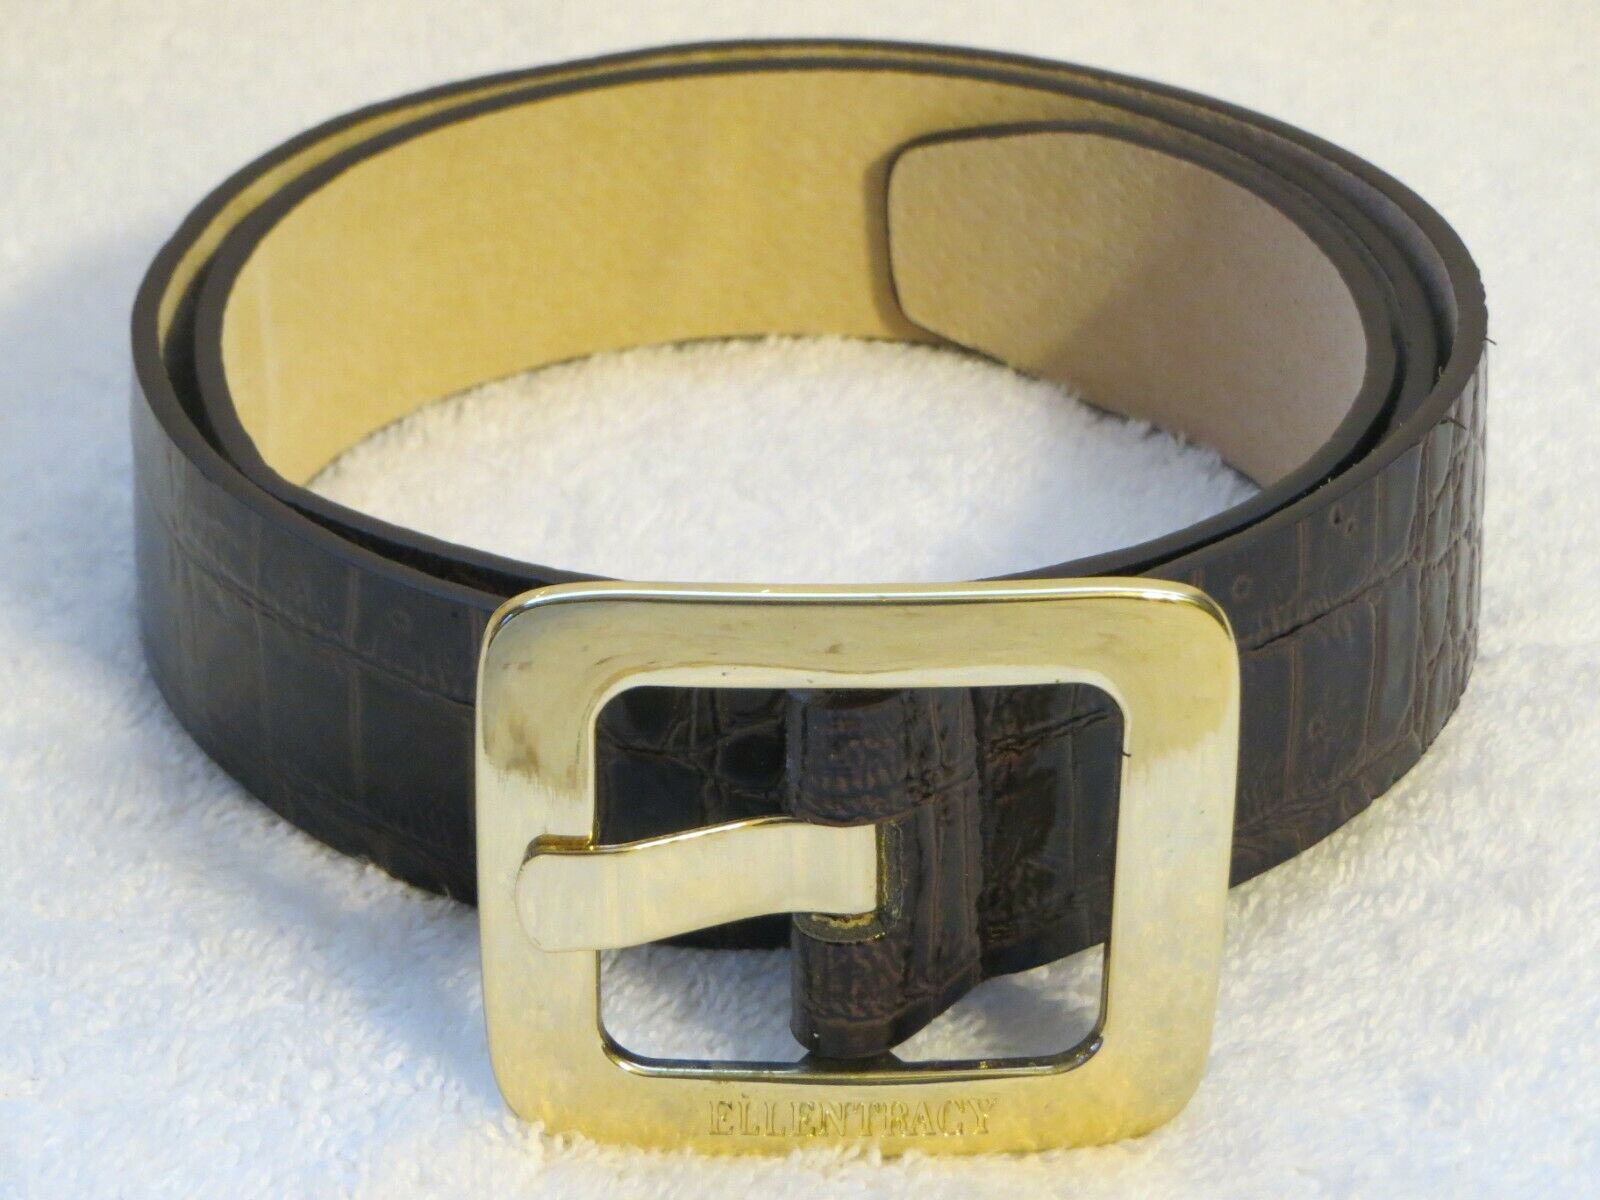 Ellen Tracy Faux Alligator Belt with Big Gold Buckle & Leather Fits 32.5-36.5